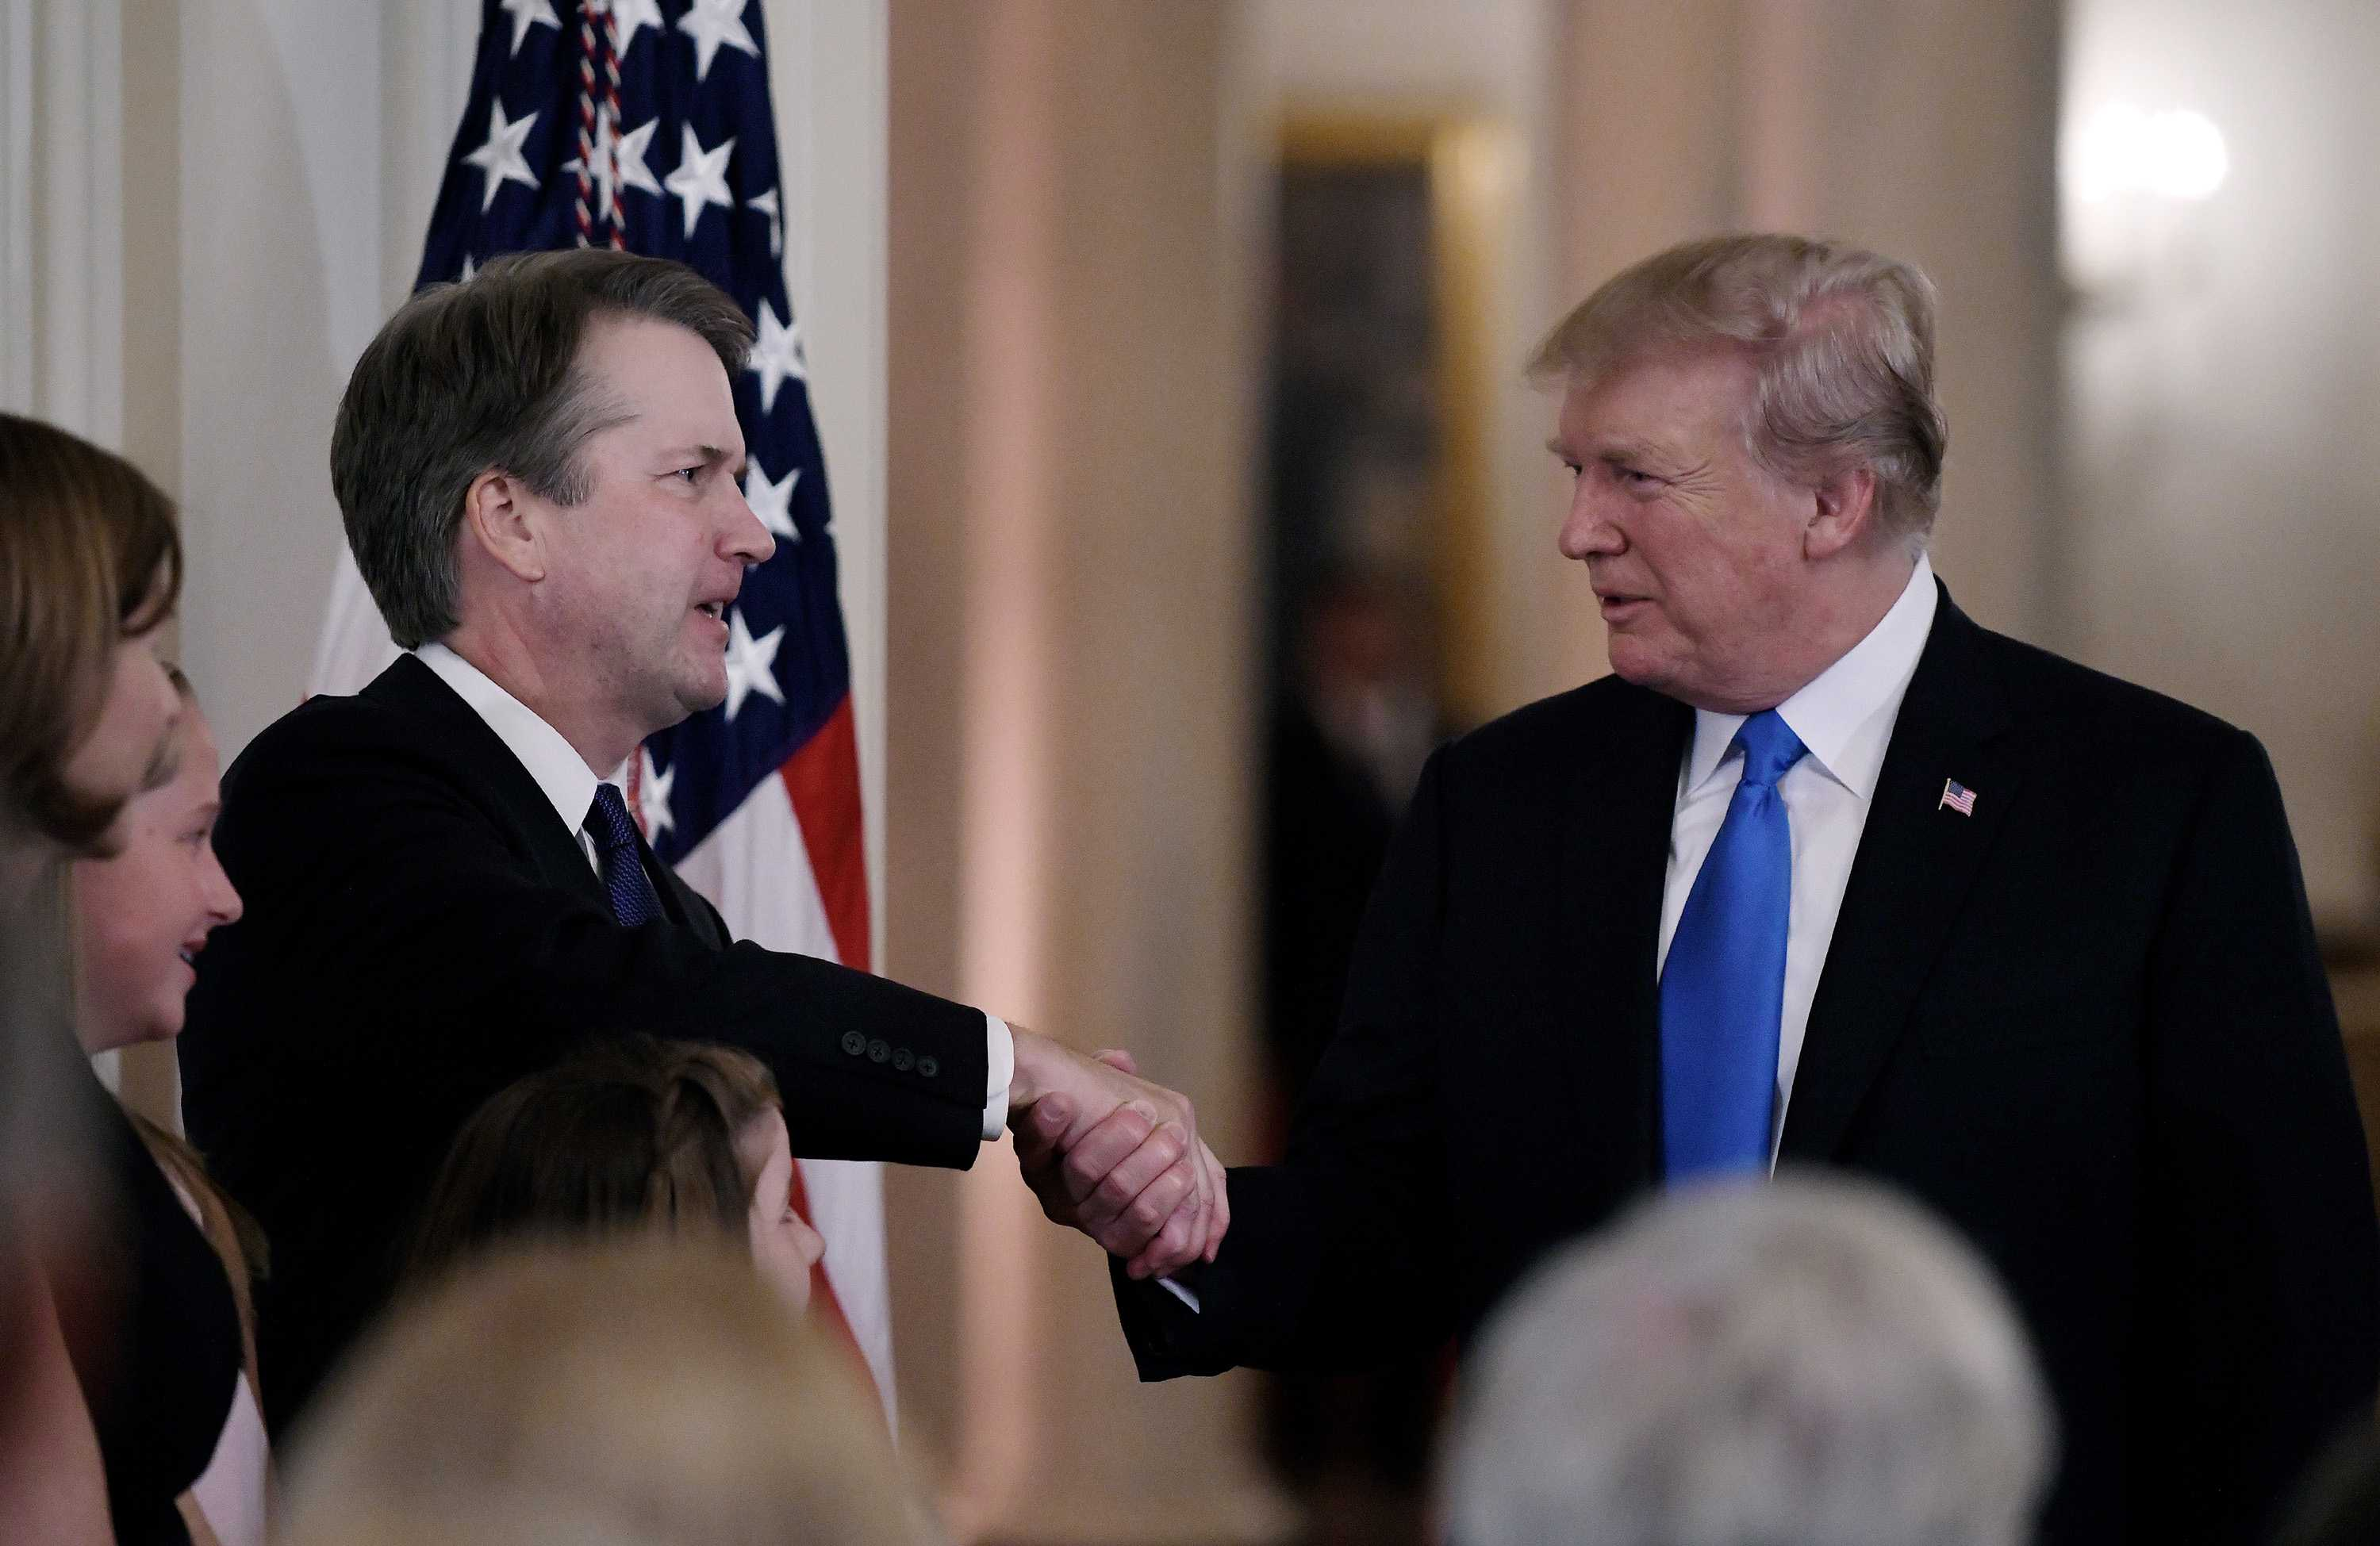 U.S. President Donald Trump shakes hands with Judge Brett Kavanaugh with after he nominated him to the Supreme Court during a ceremony in the East Room of the White House July 9, 2018 in Washington, D.C. (Olivier Douliery/Abaca Press/TNS)